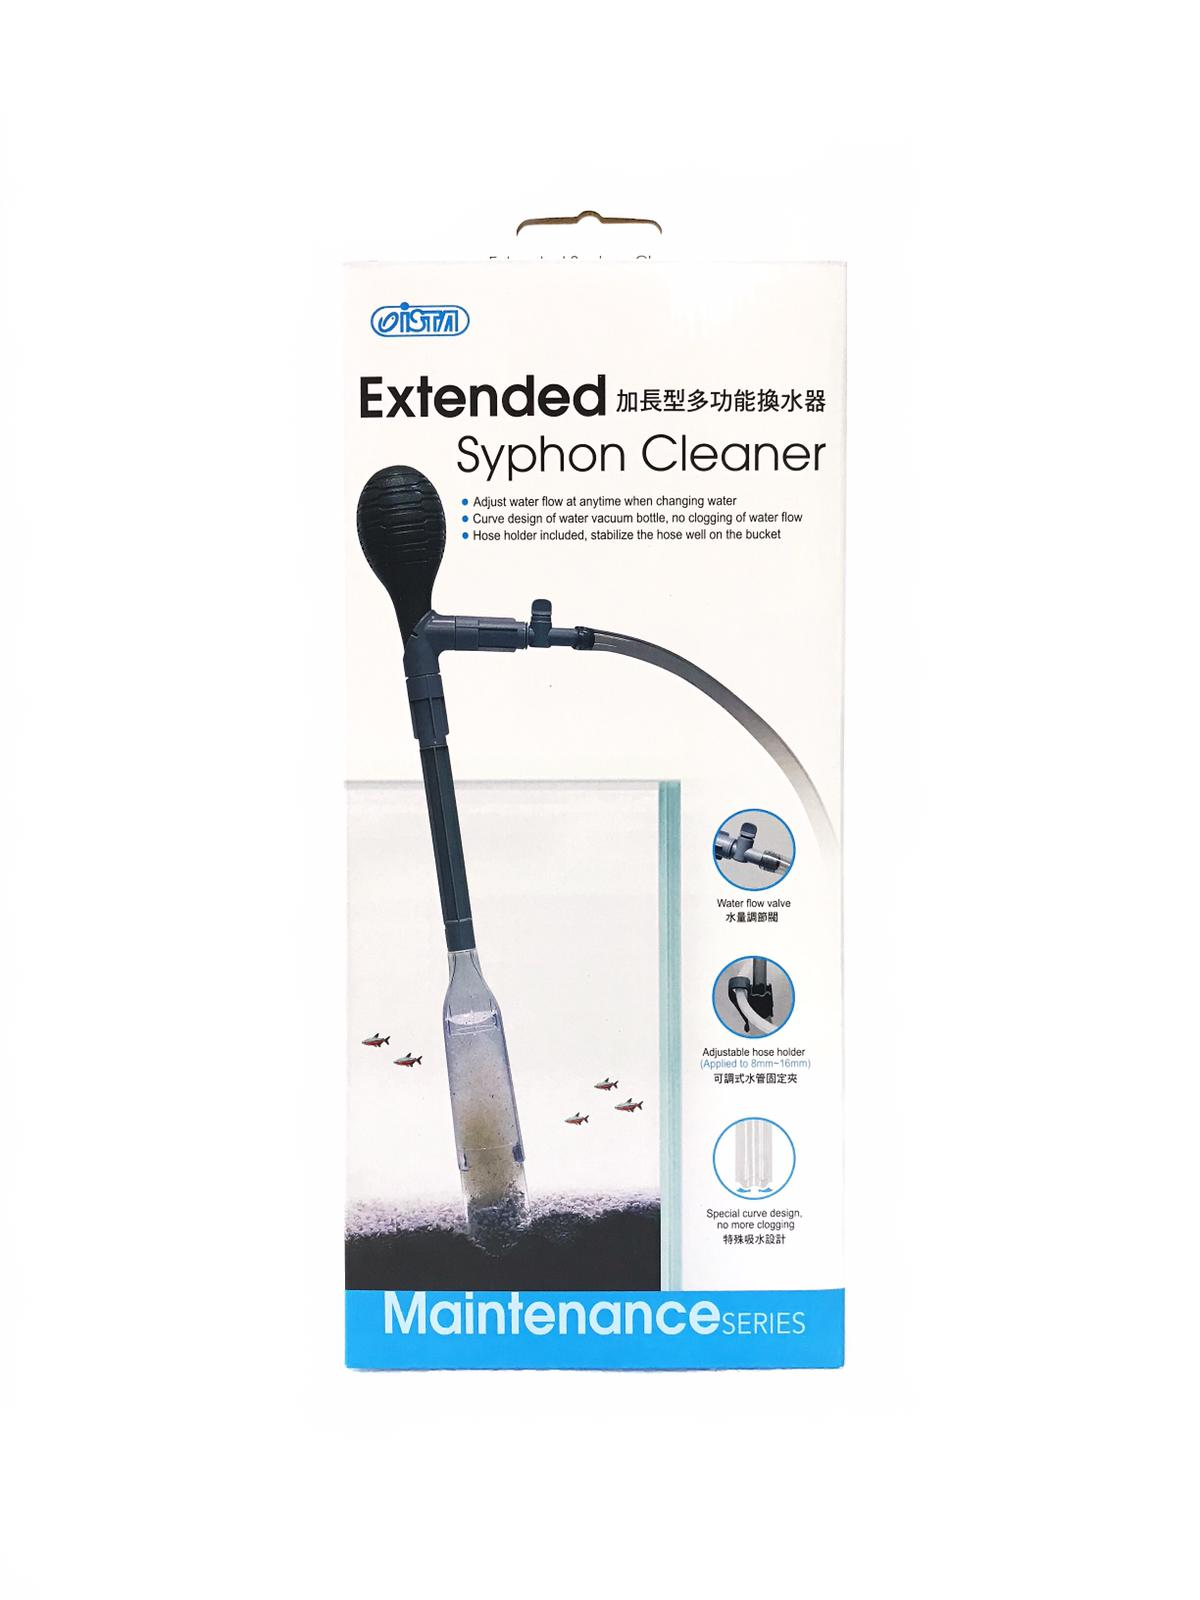 Ista Extended Syphon Cleaner